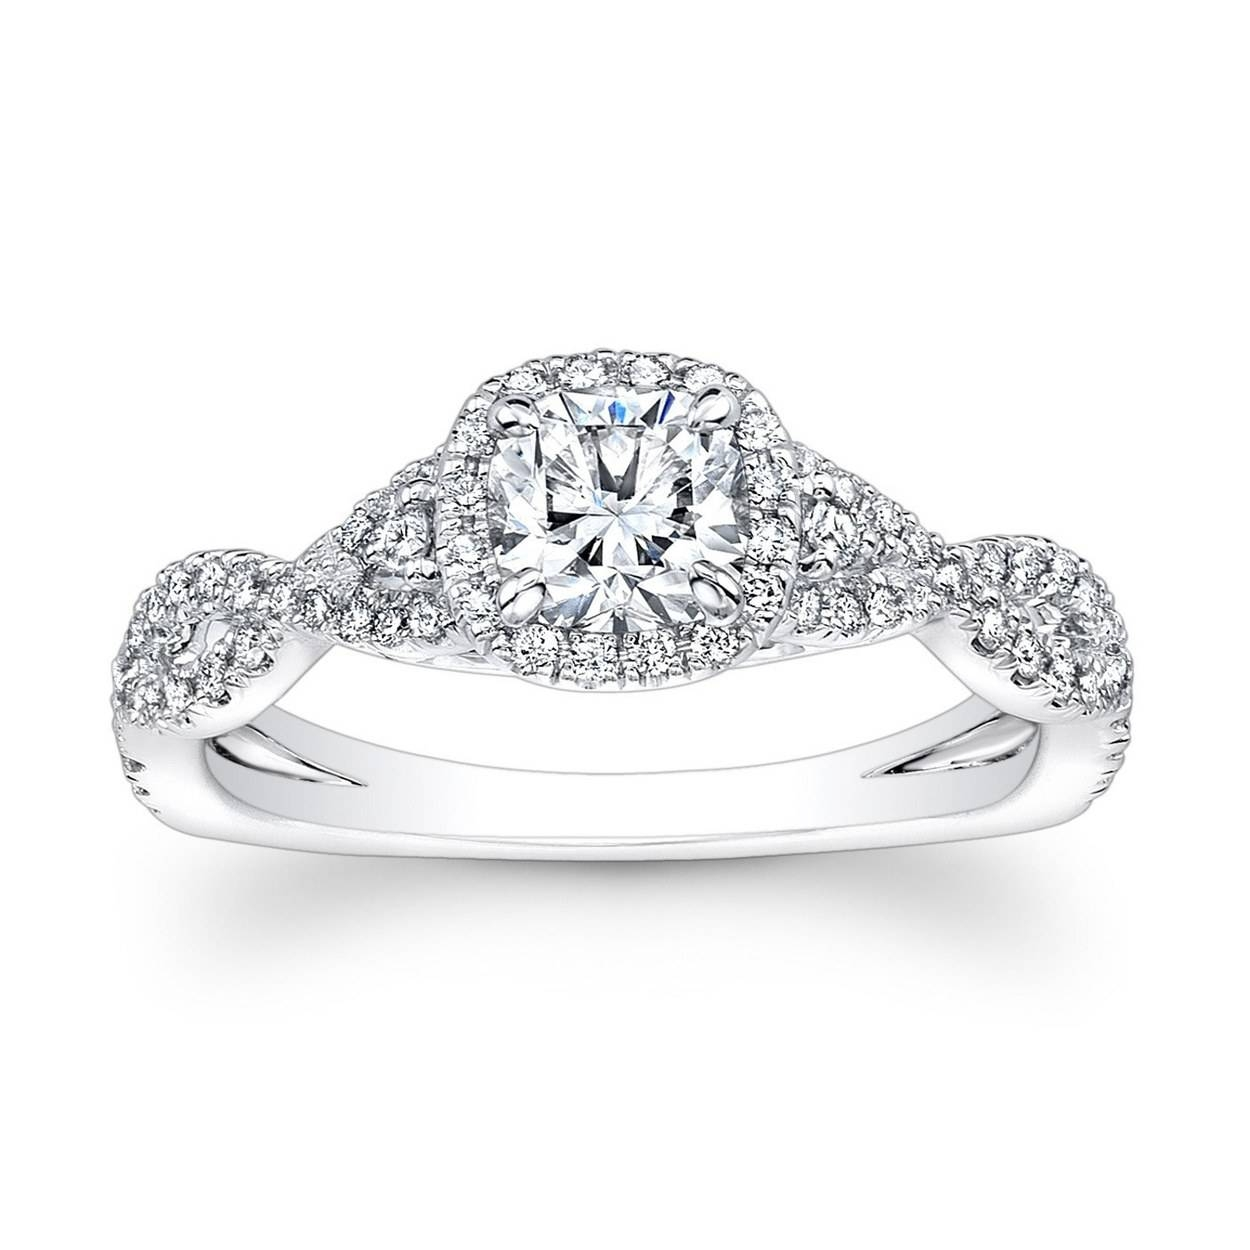 Ring Weird Wedding Rings Kay Jewelers Pear Shaped Engagement Rings Pertaining To Sams Club Wedding Bands (View 8 of 15)